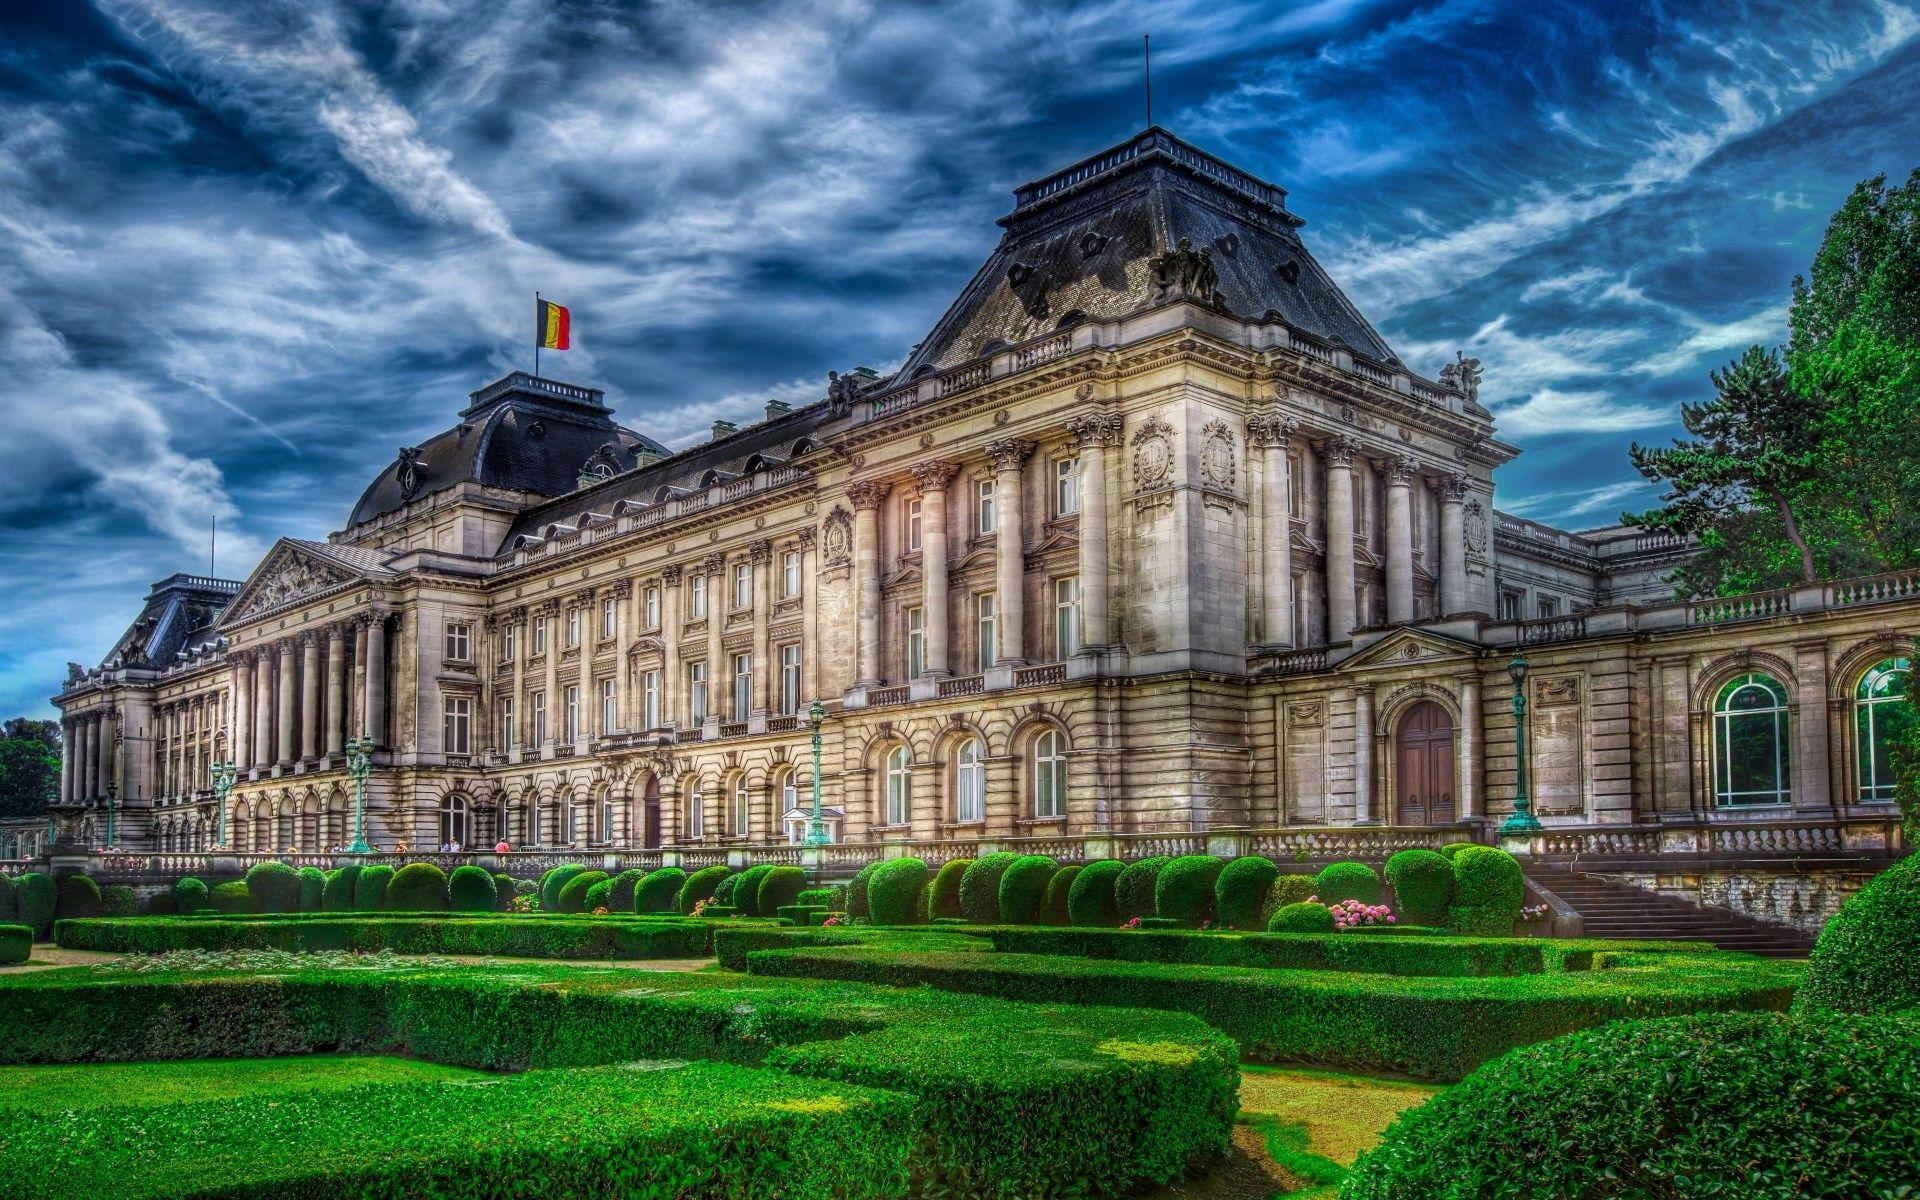 1920x1200 Wallpapers for Desktop: royal palace of brussels